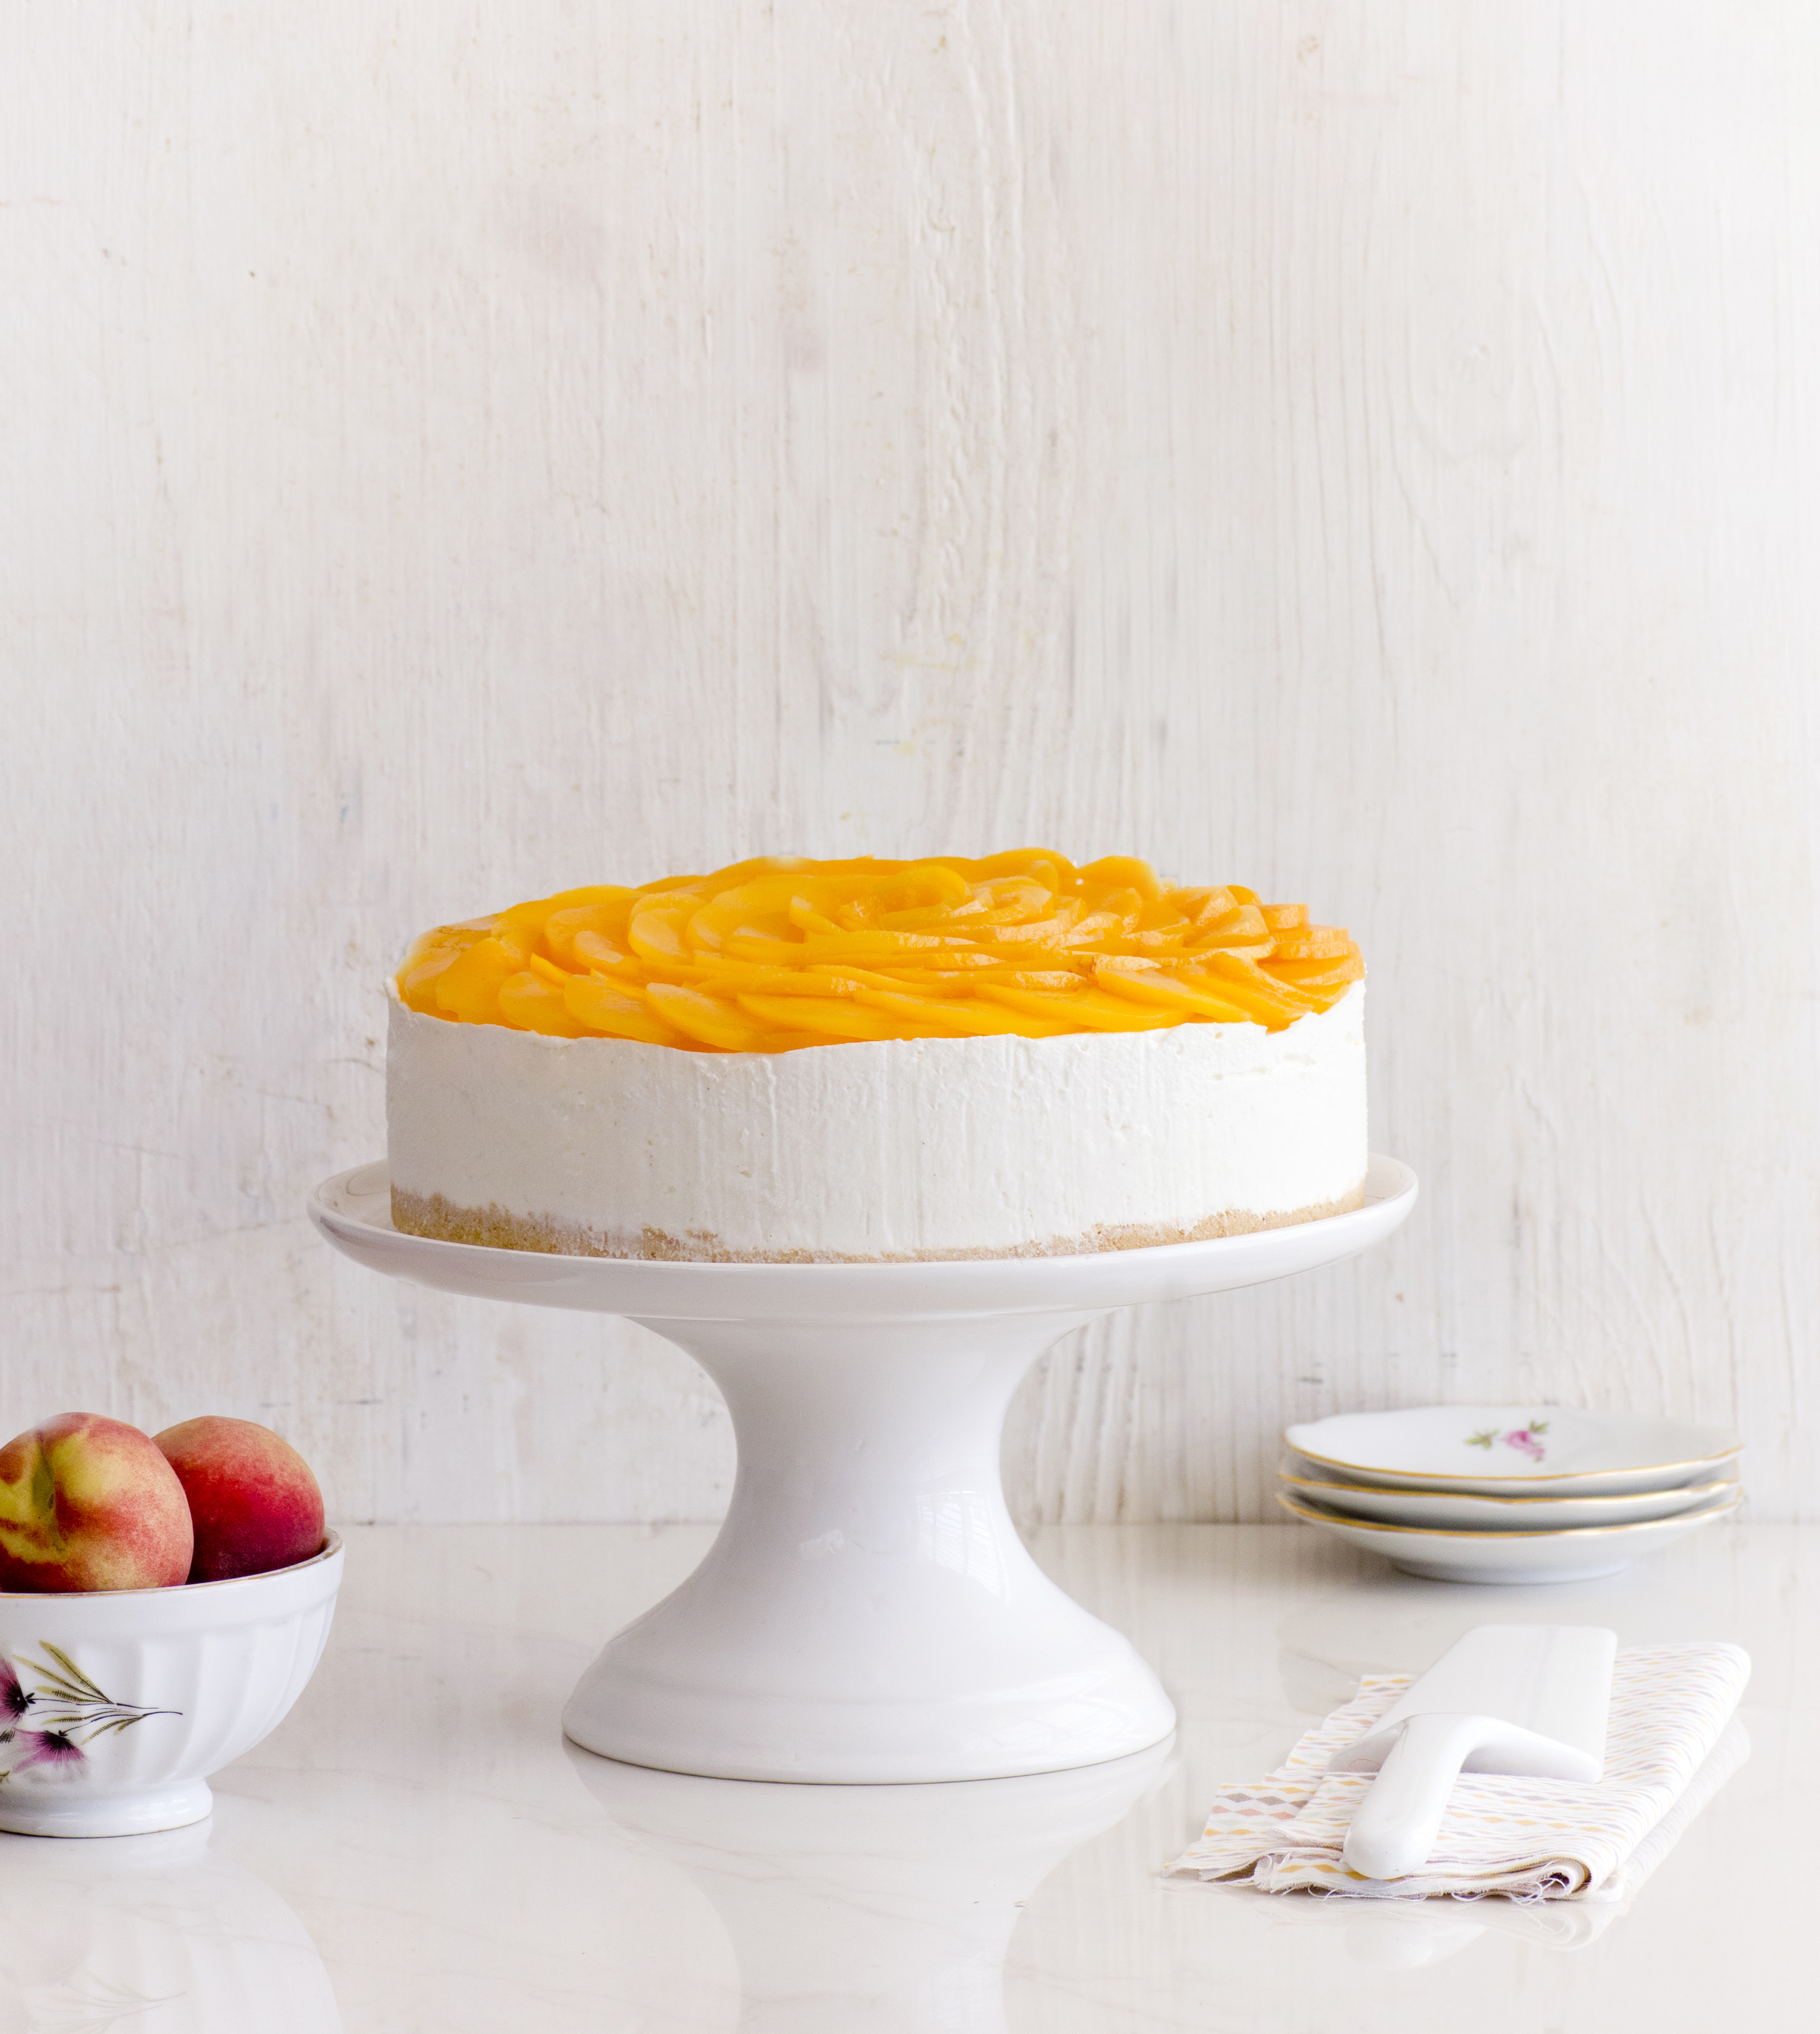 No Bake Cheesecake with Peaches